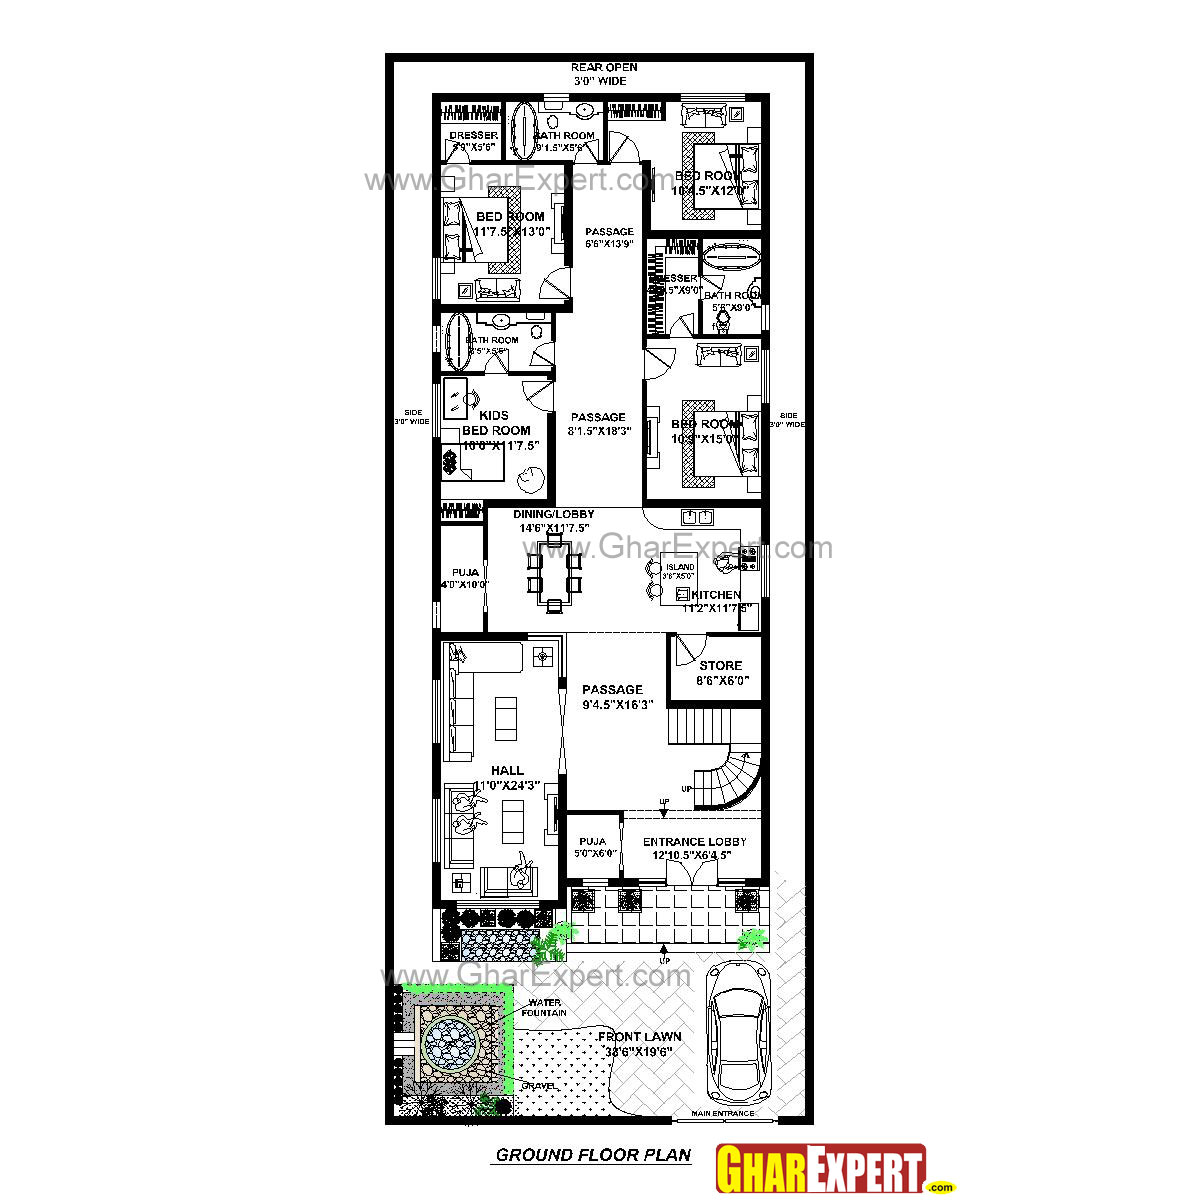 House Plan For 33 Feet By 40 Feet Plot Plot Size 147: House Plan For 40 Feet By 100 Feet Plot (Plot Size 444